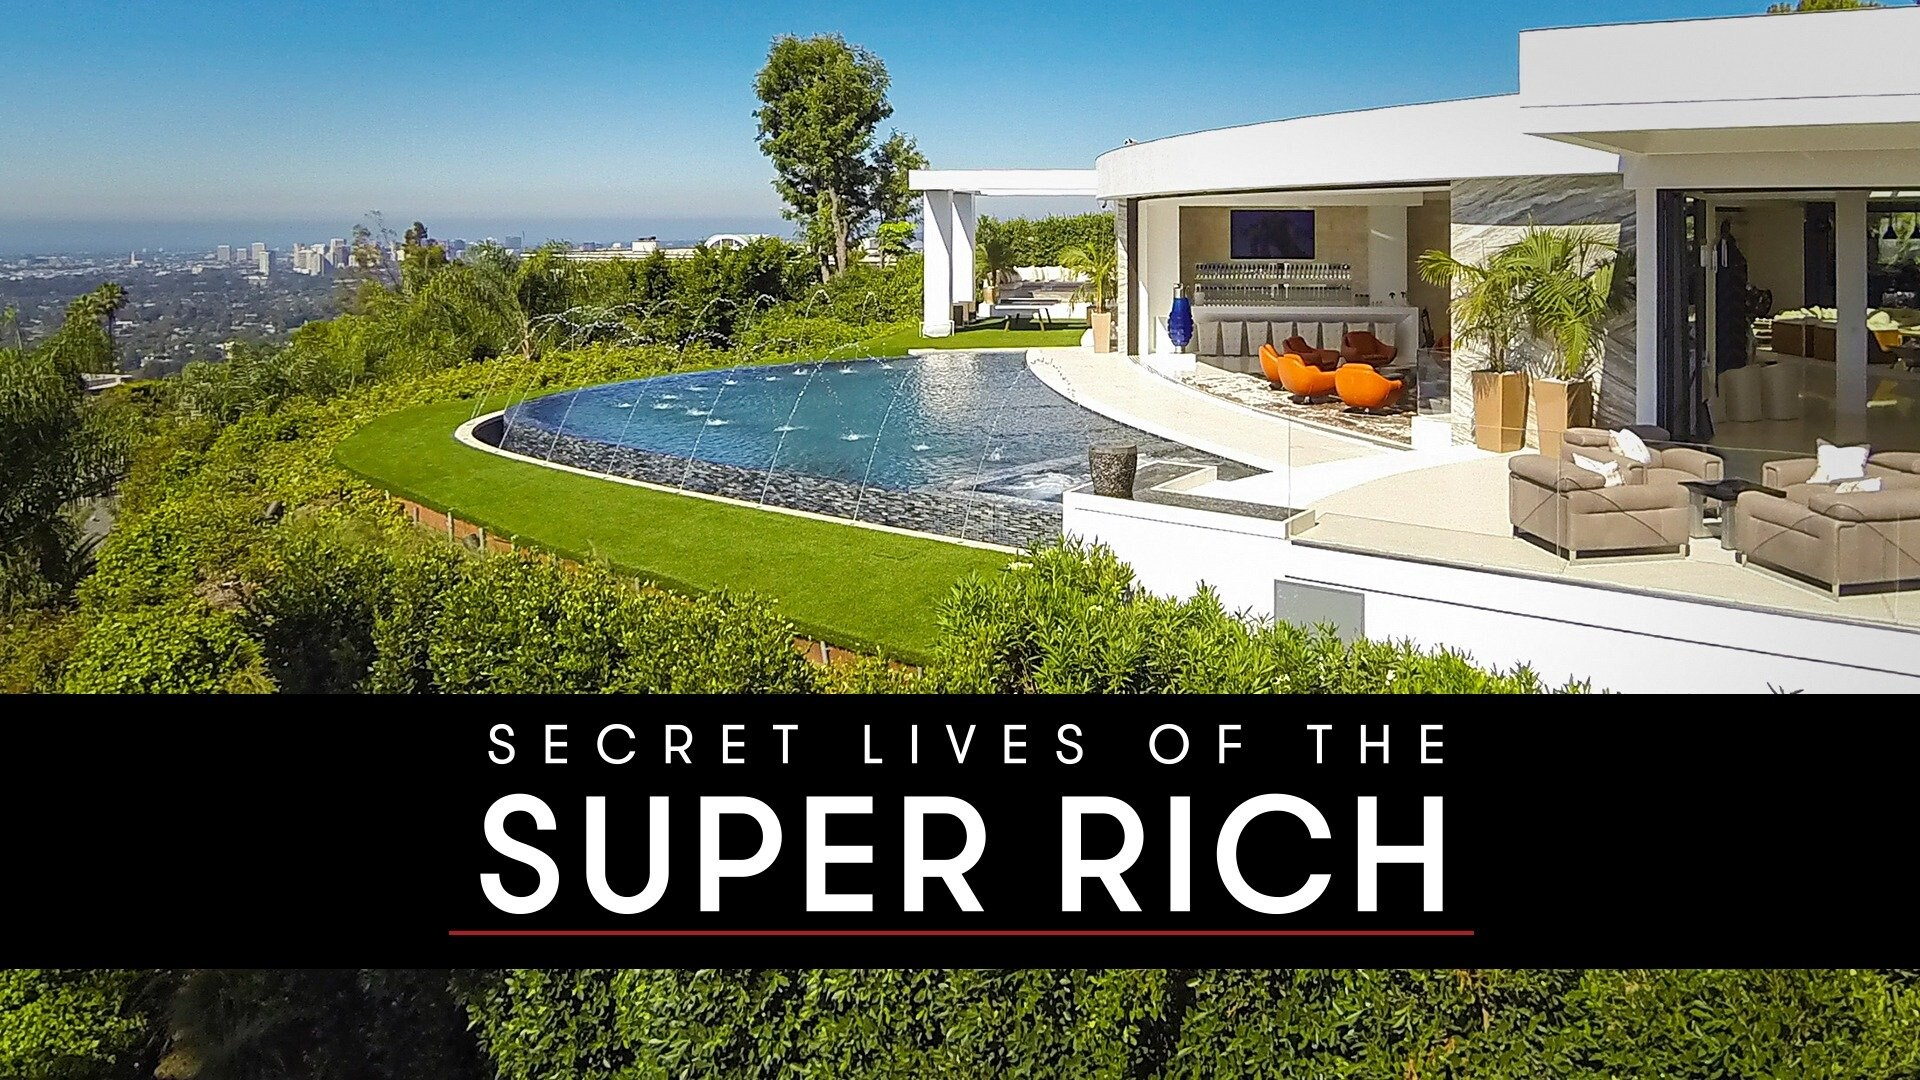 The Most Expensive Home & The Dirtiest Investment